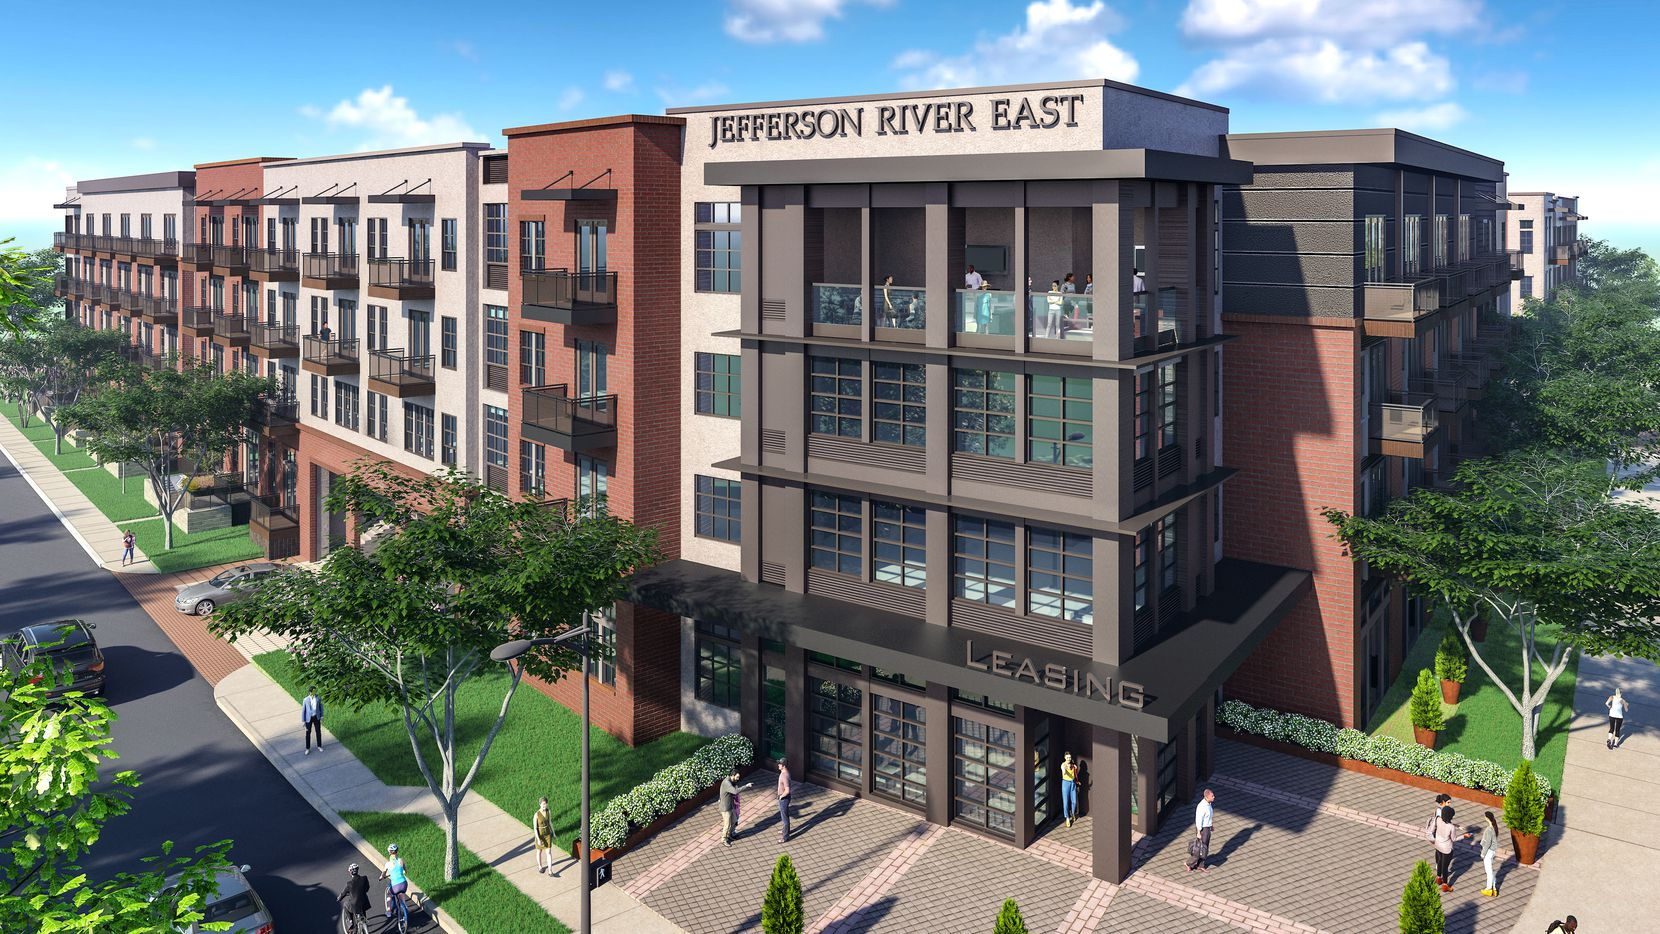 Builder JPI's Jefferson River East apartments in Fort Worth will have more than 400 units.